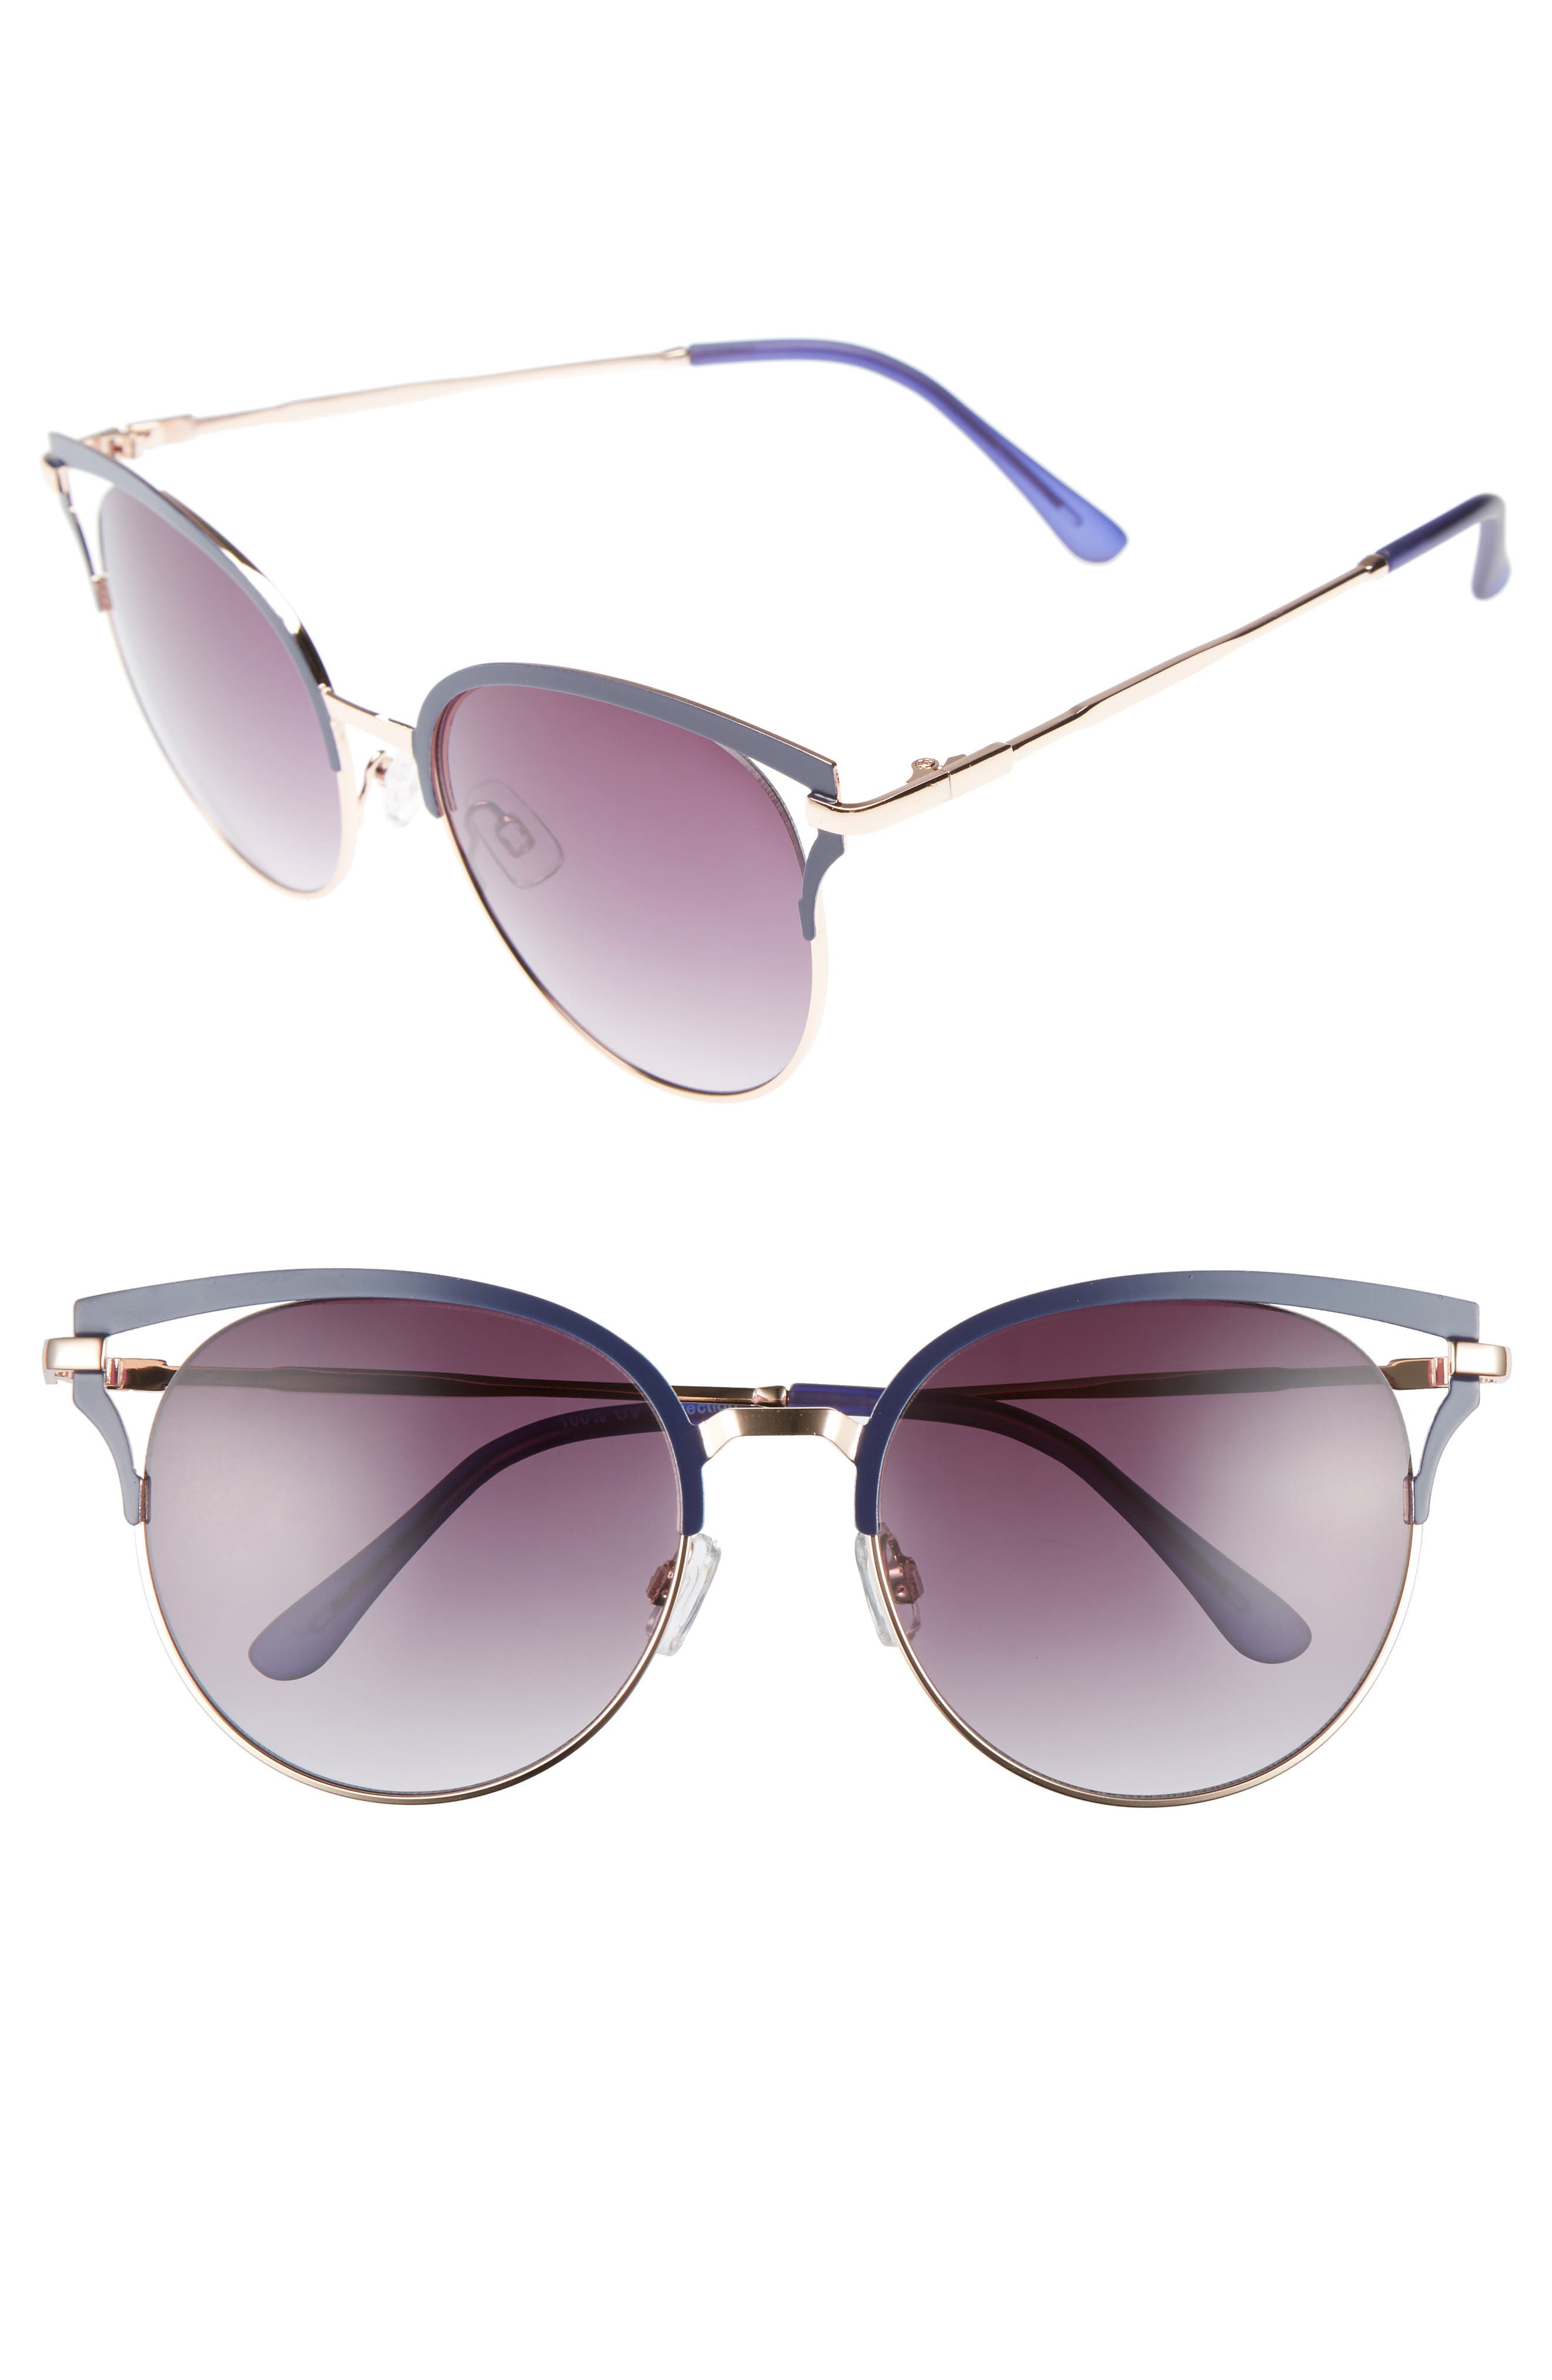 Main Image - BP. 55mm Colored Round Sunglasses